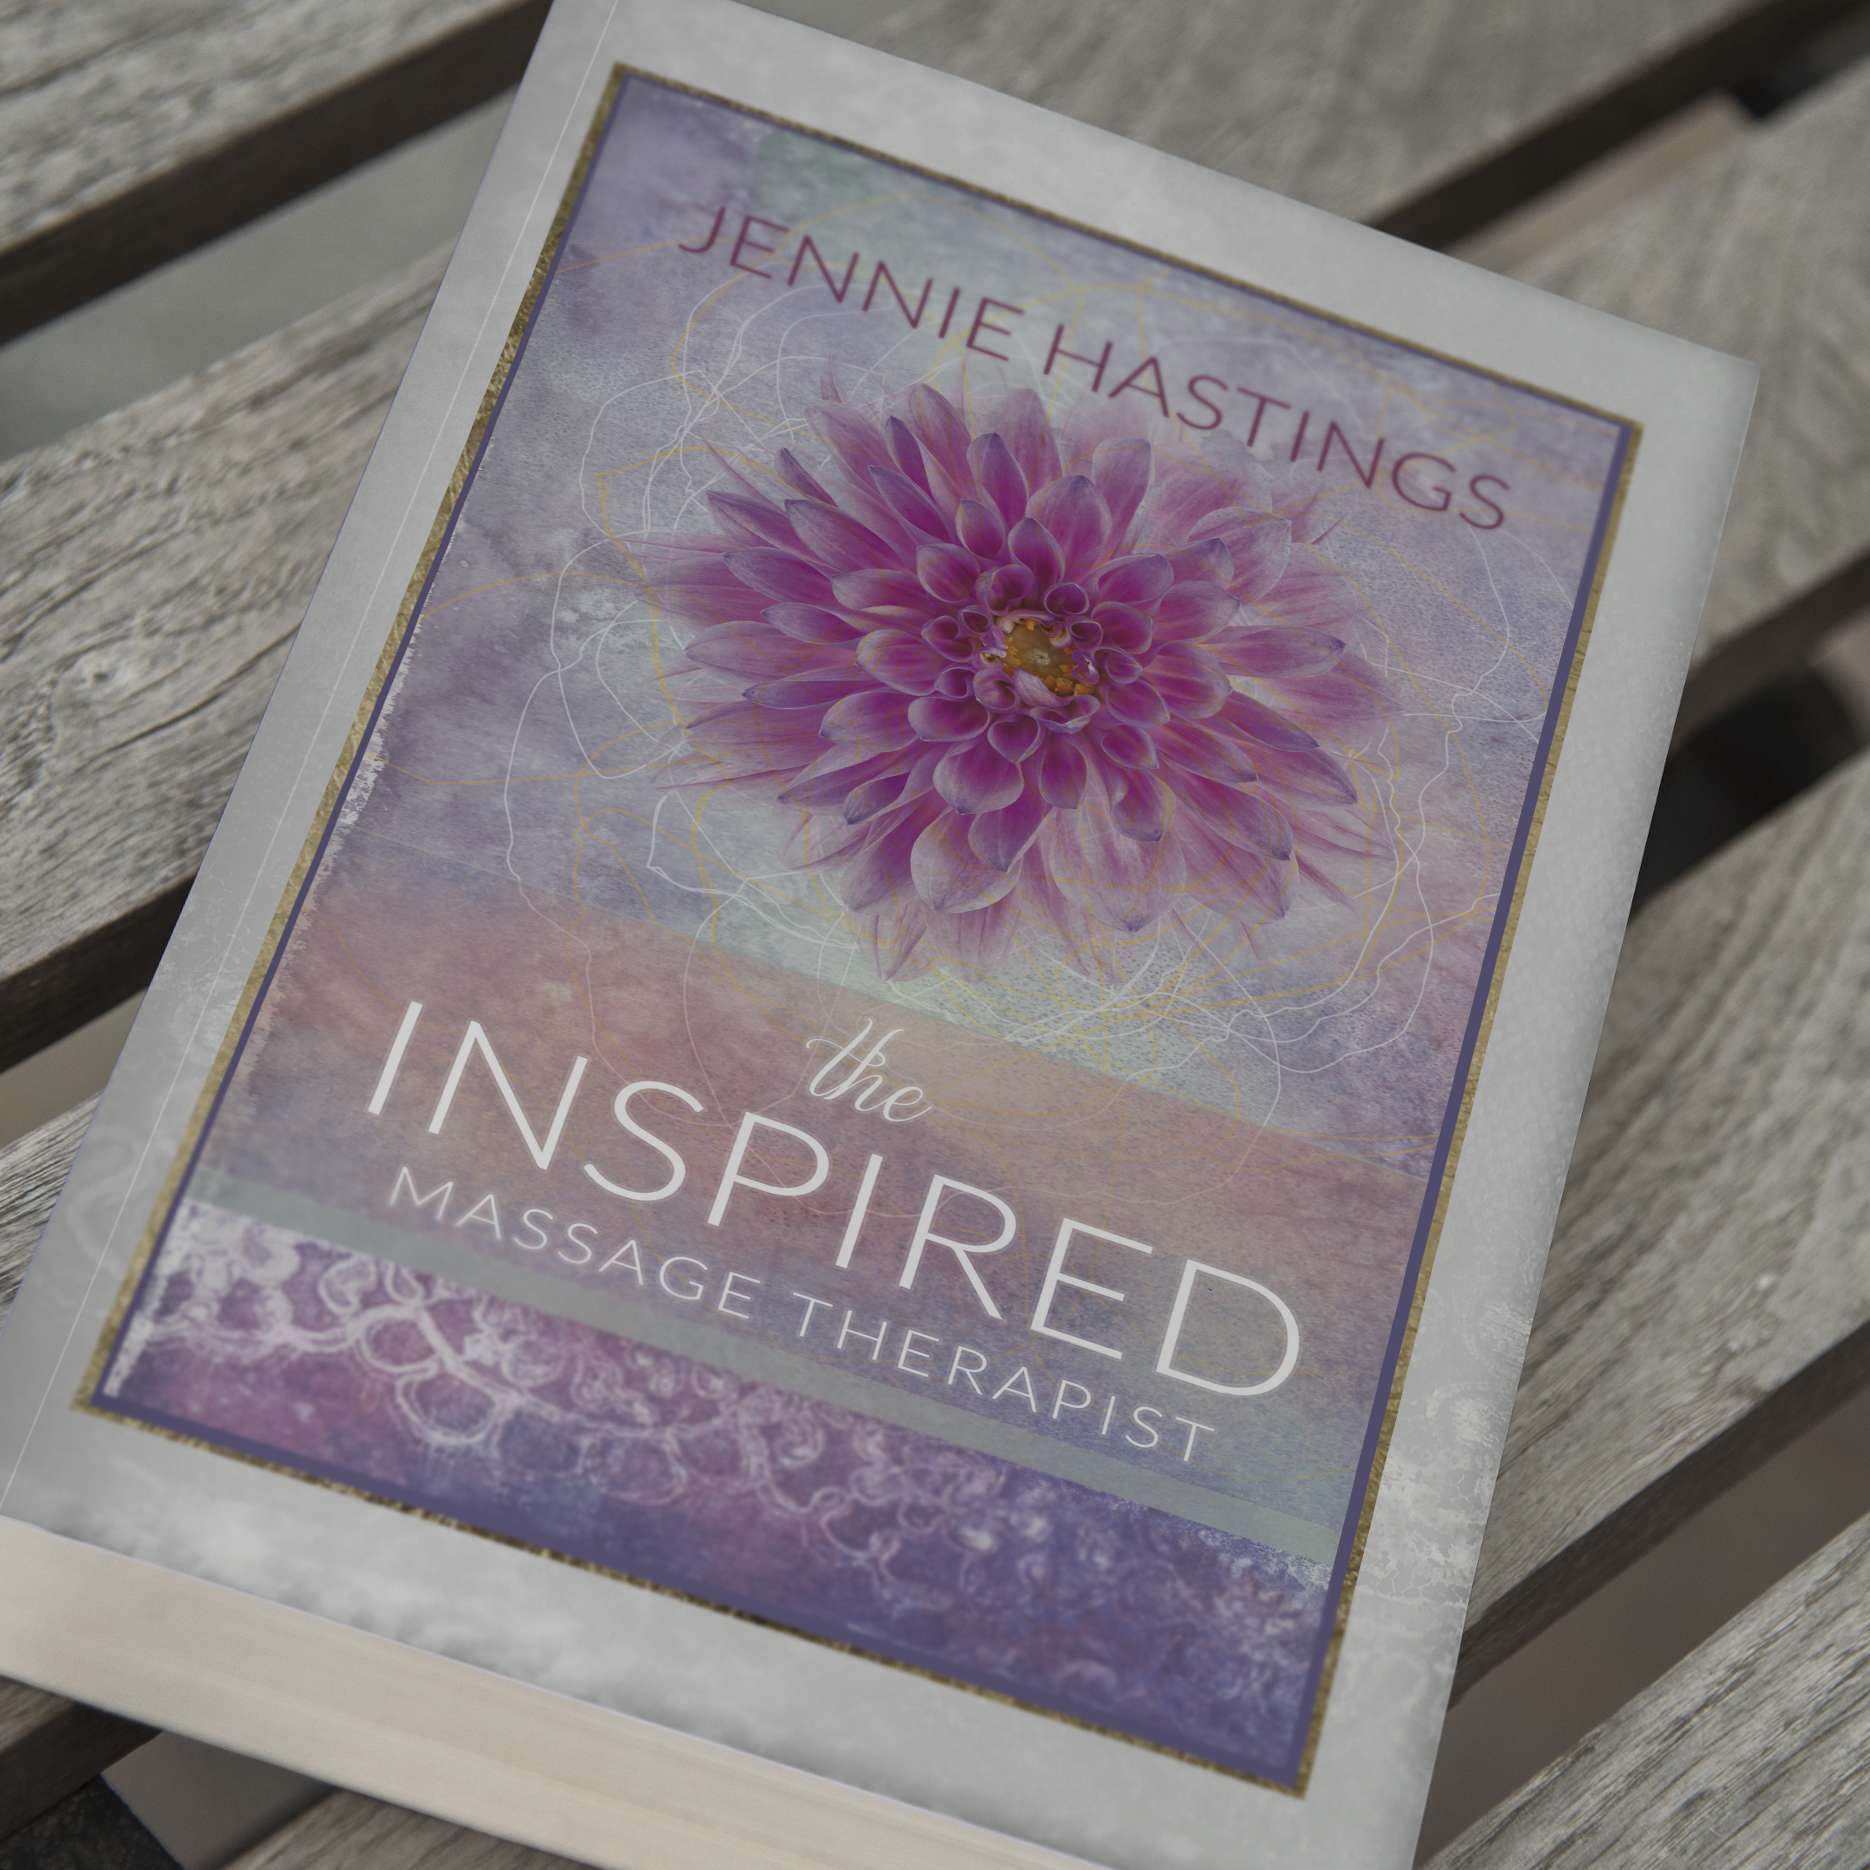 Inspwired Book Cover Design | The Inspired Massage Therapist II